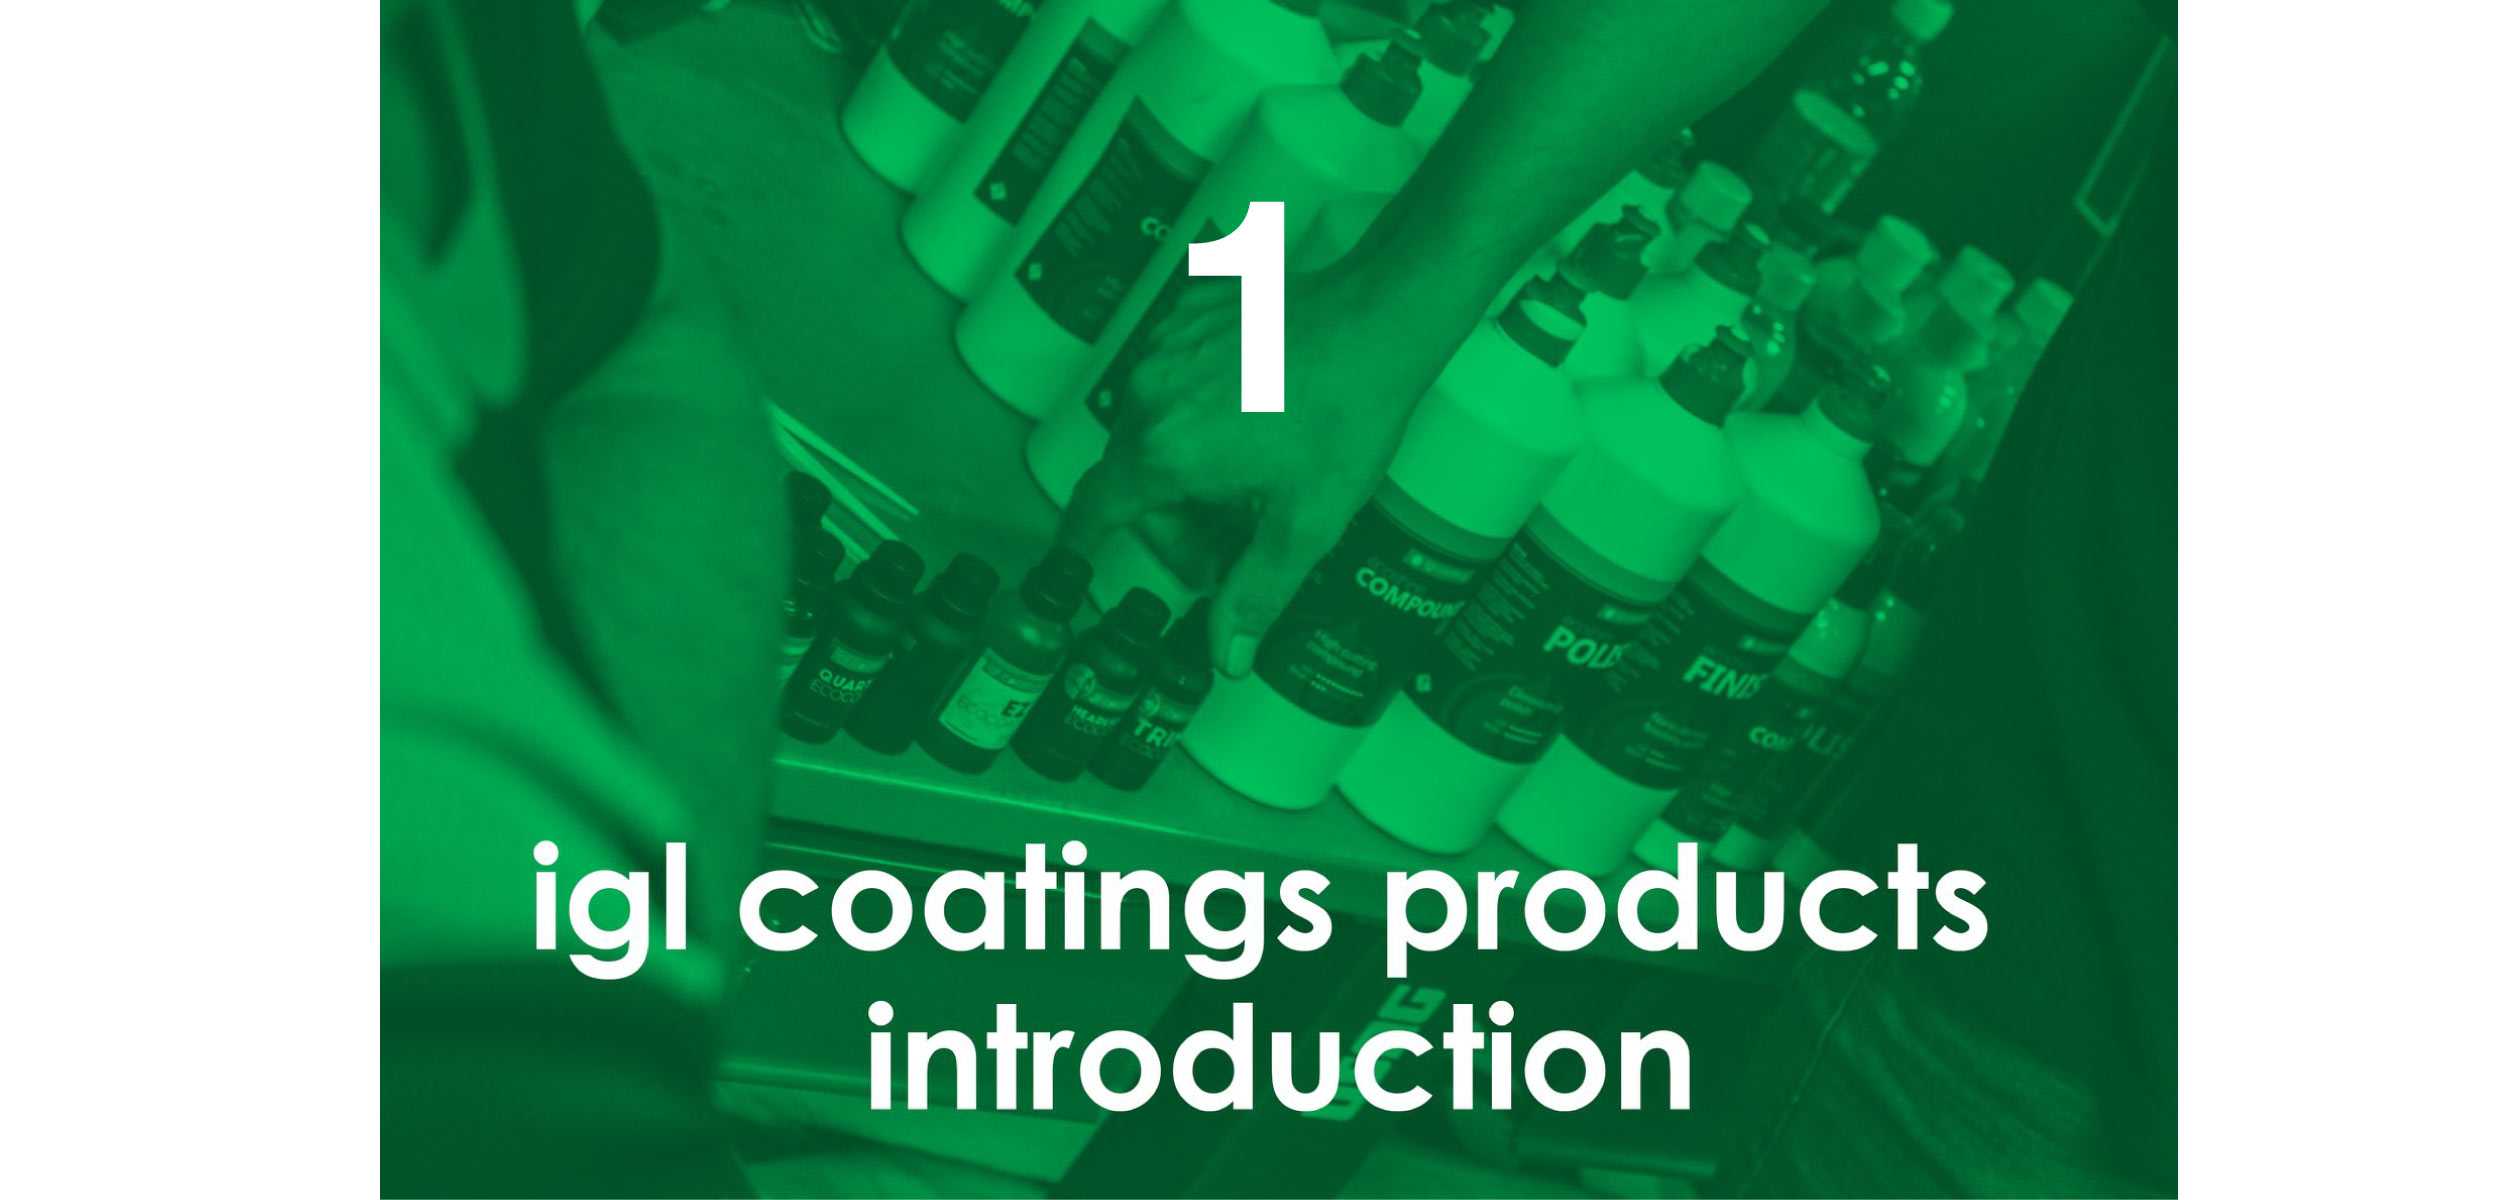 igl-coatings-product-introduction-detailing-training-course-reason-to-join-number-1